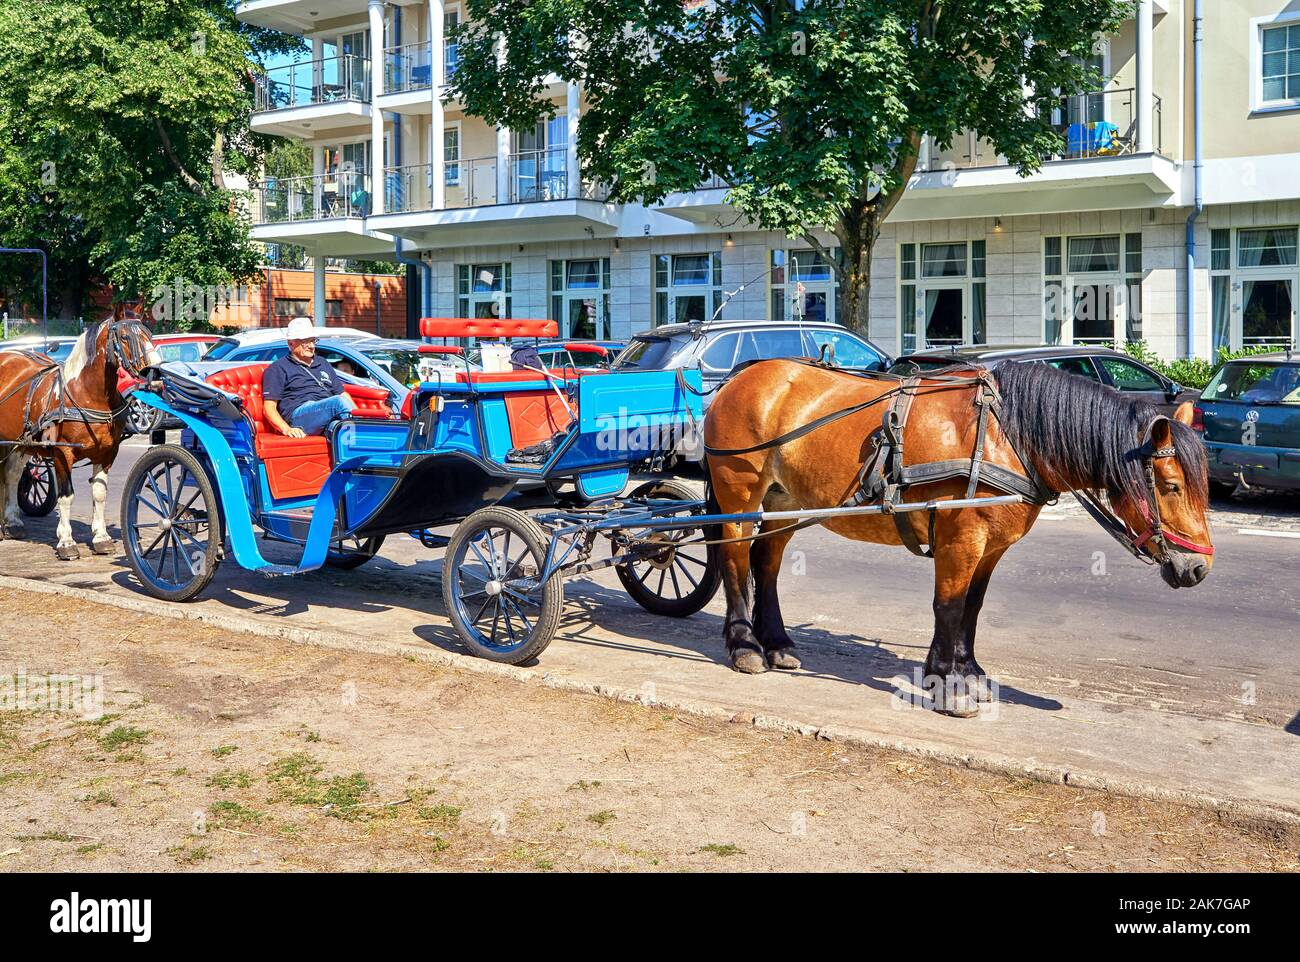 Horse carriages for a city tour in Swinemünde. Swinoujscie, Poland Stock Photo